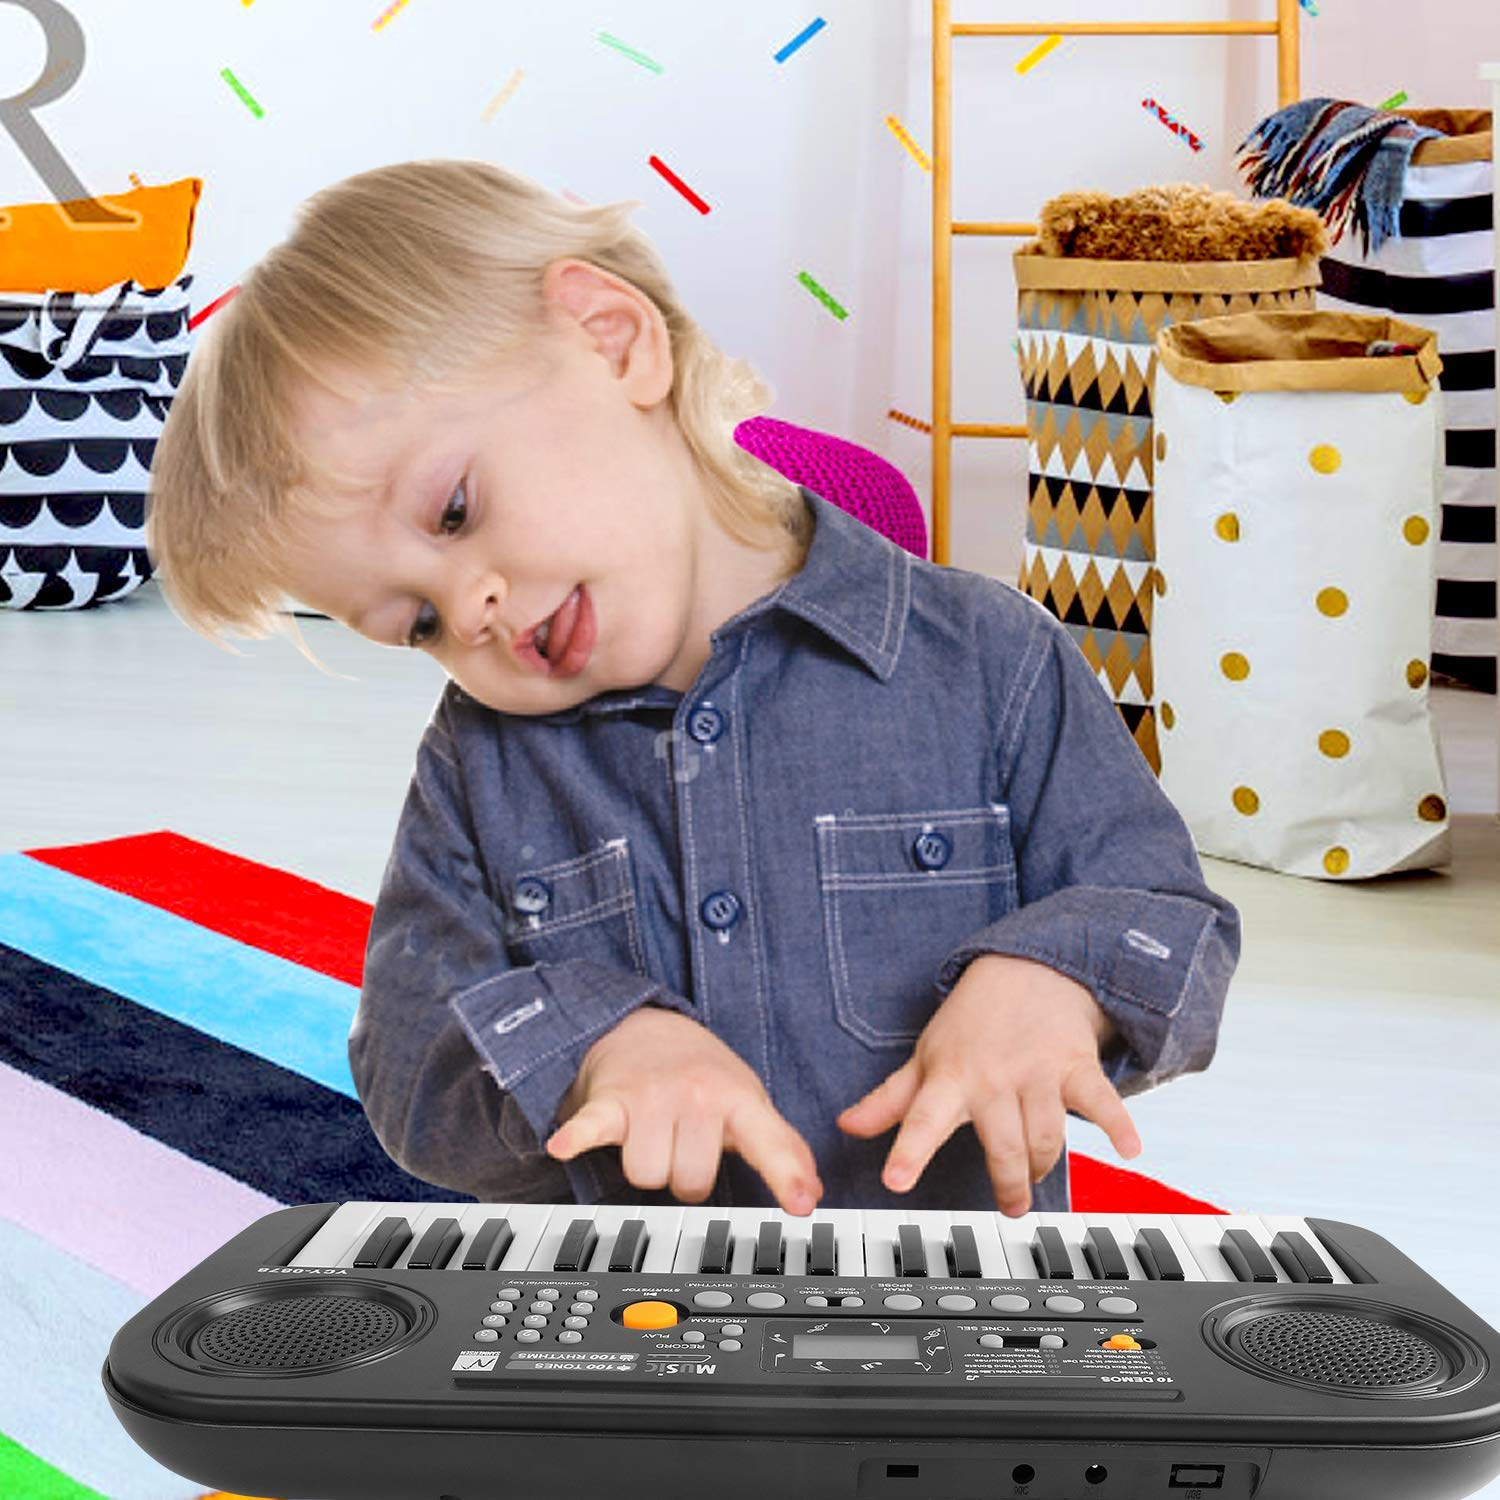 TWFRIC Kids Piano Keyboard, 37 Keys Dual-Speakers Piano for Kids LCD Screen Display Portable Keyboard 2019 Newest Piano Keyboards Music Educational Toy for Boys Girls Child (Black) by TWFRIC (Image #2)